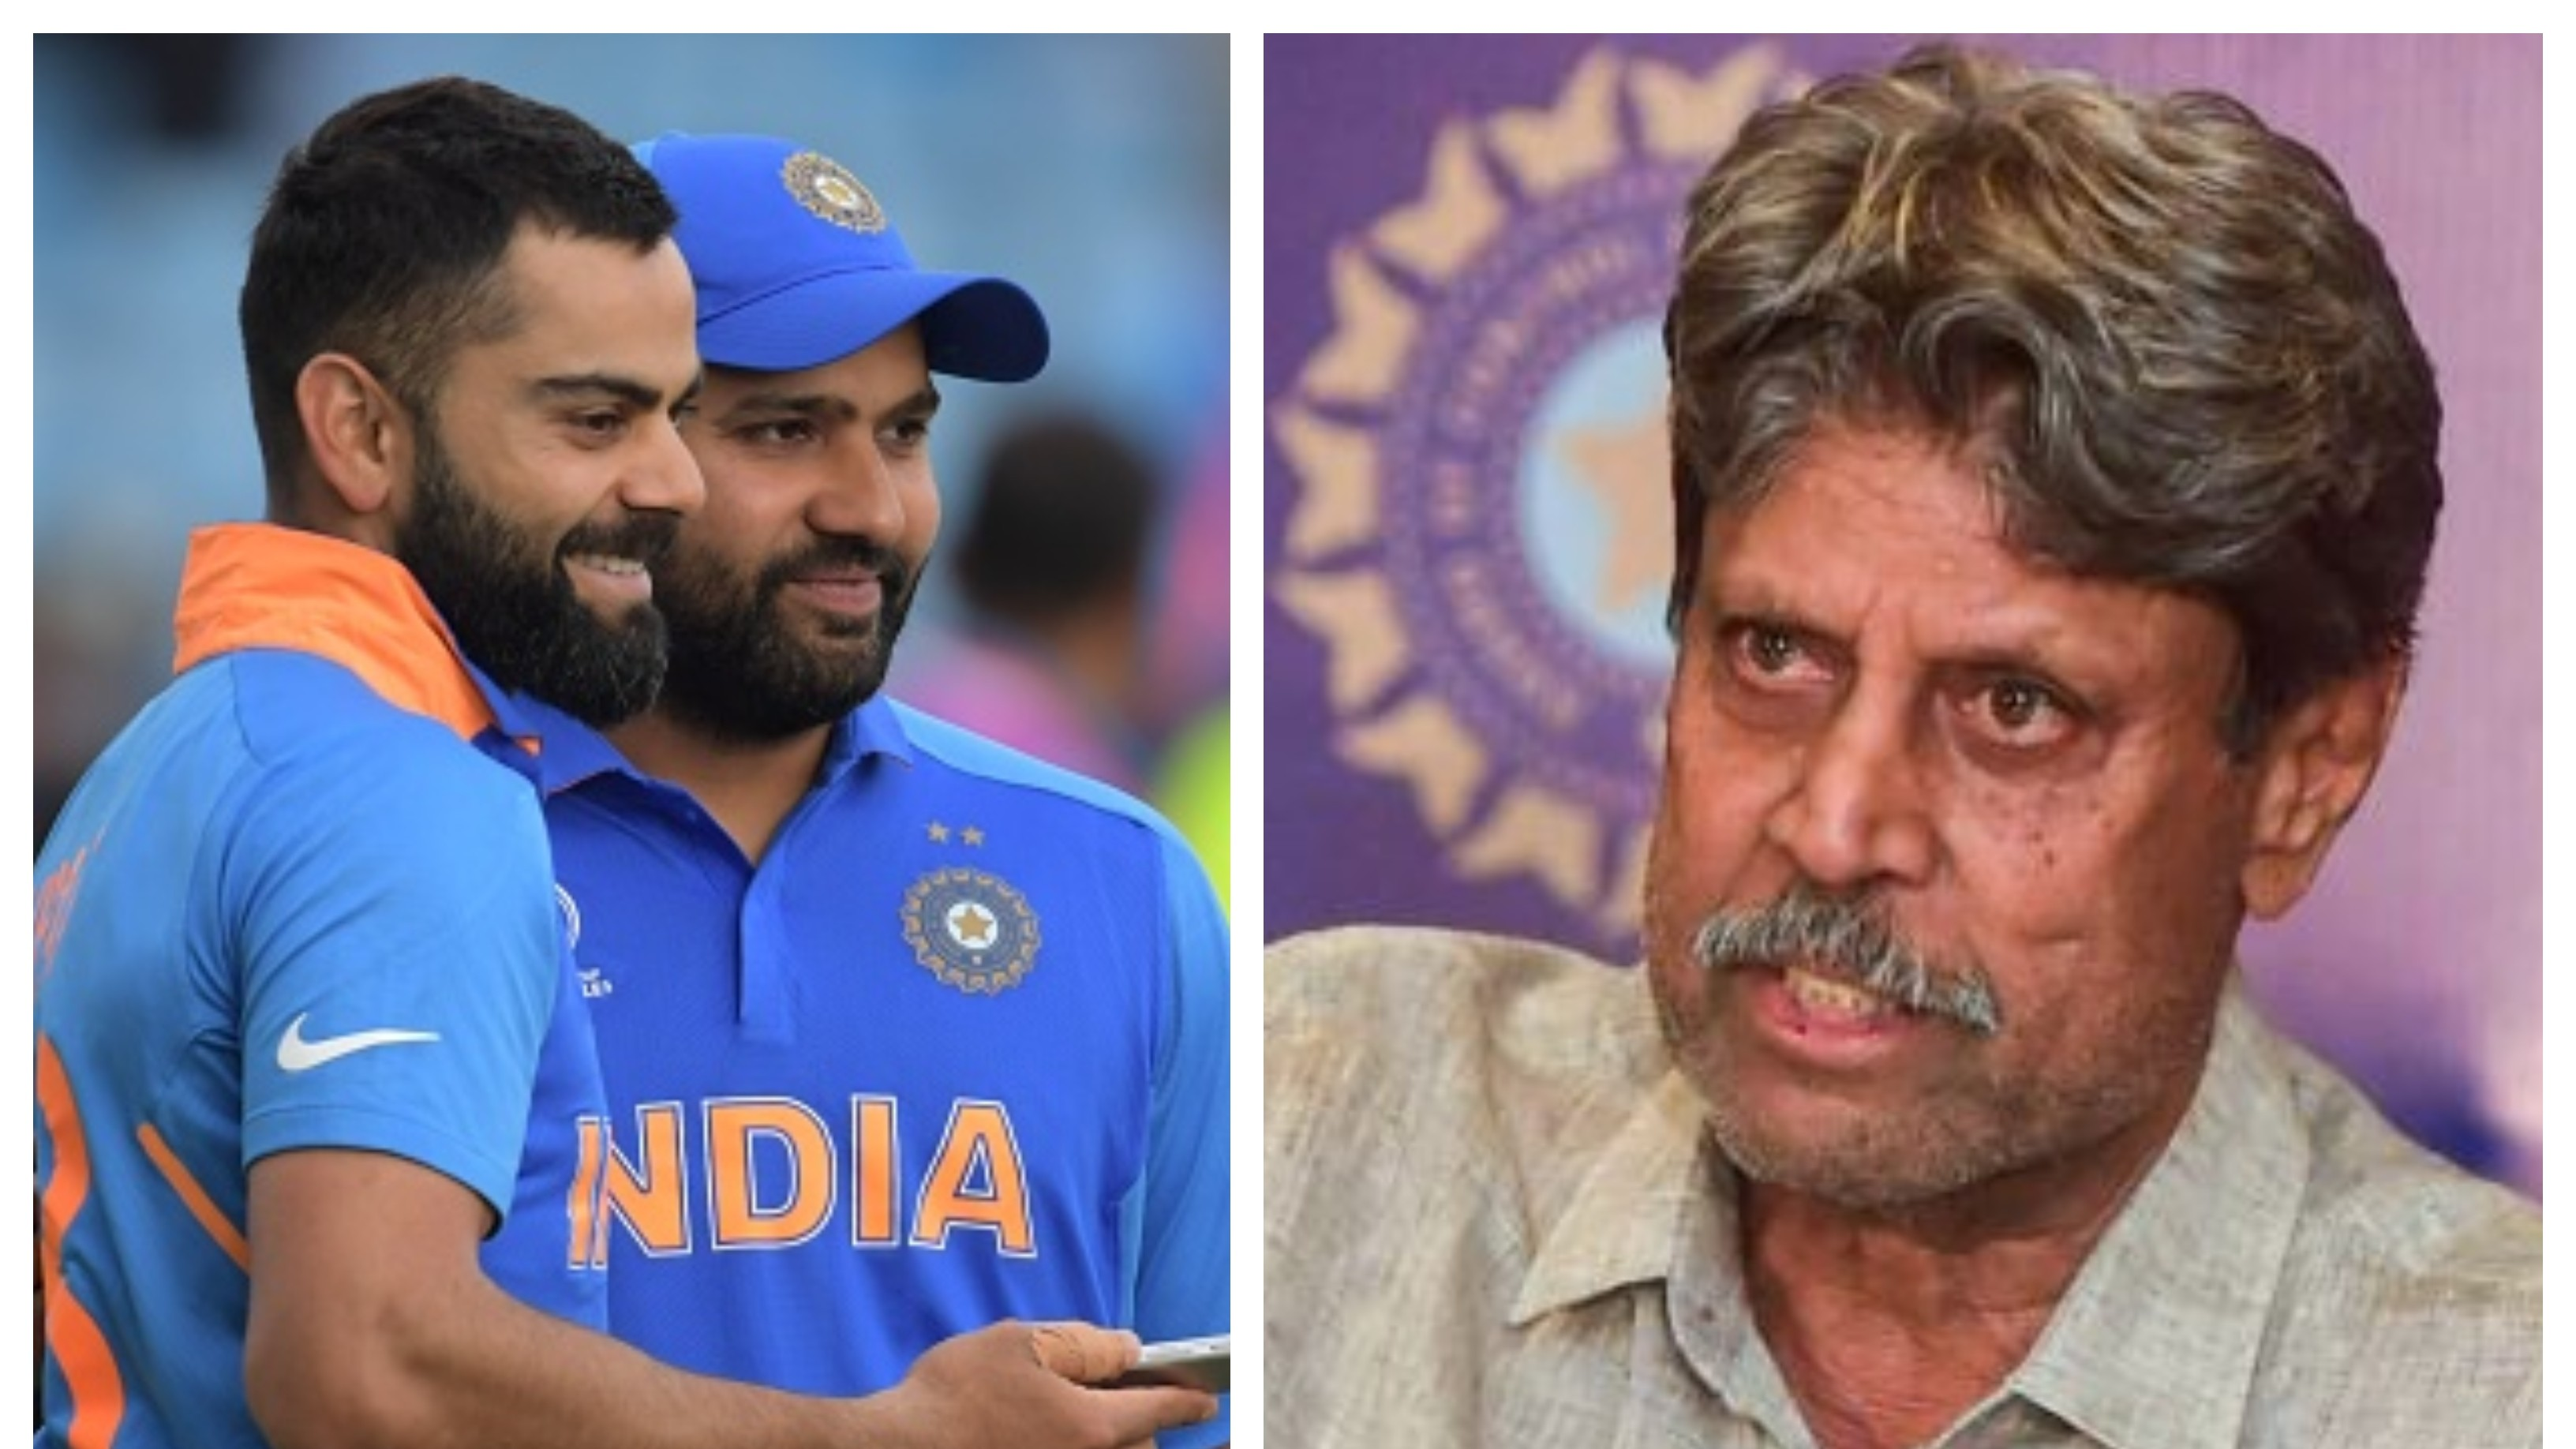 Kapil Dev says split-captaincy model between Kohli and Rohit won't work in Indian culture